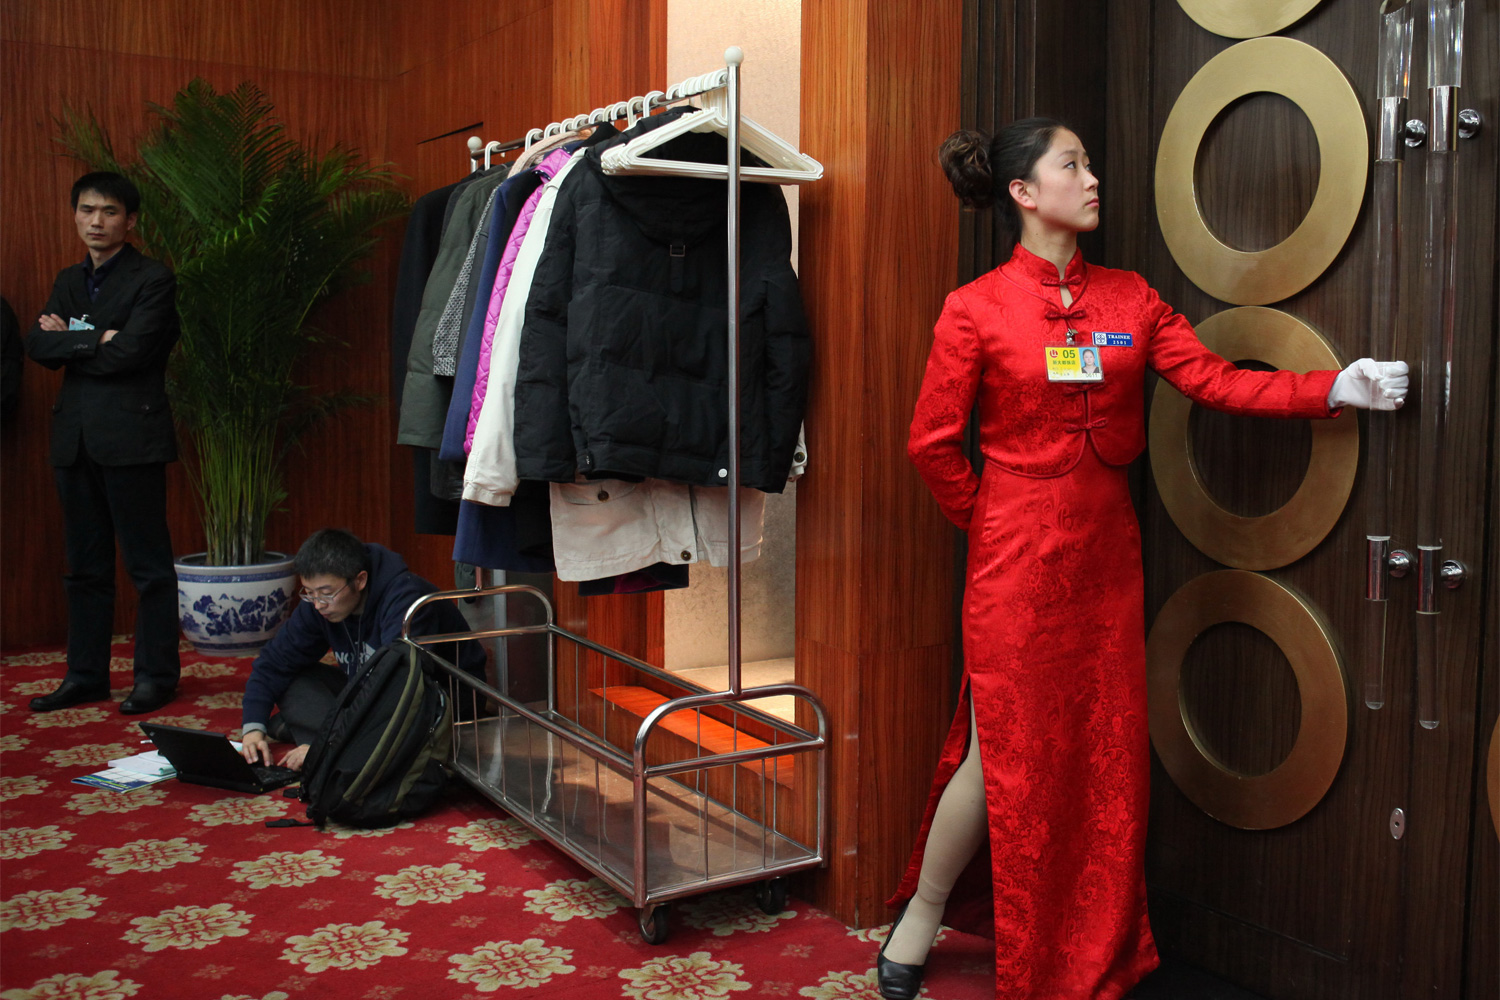 A waitress prepares to open the door for others to pass through at the Capital Hotel, March 4, 2011.